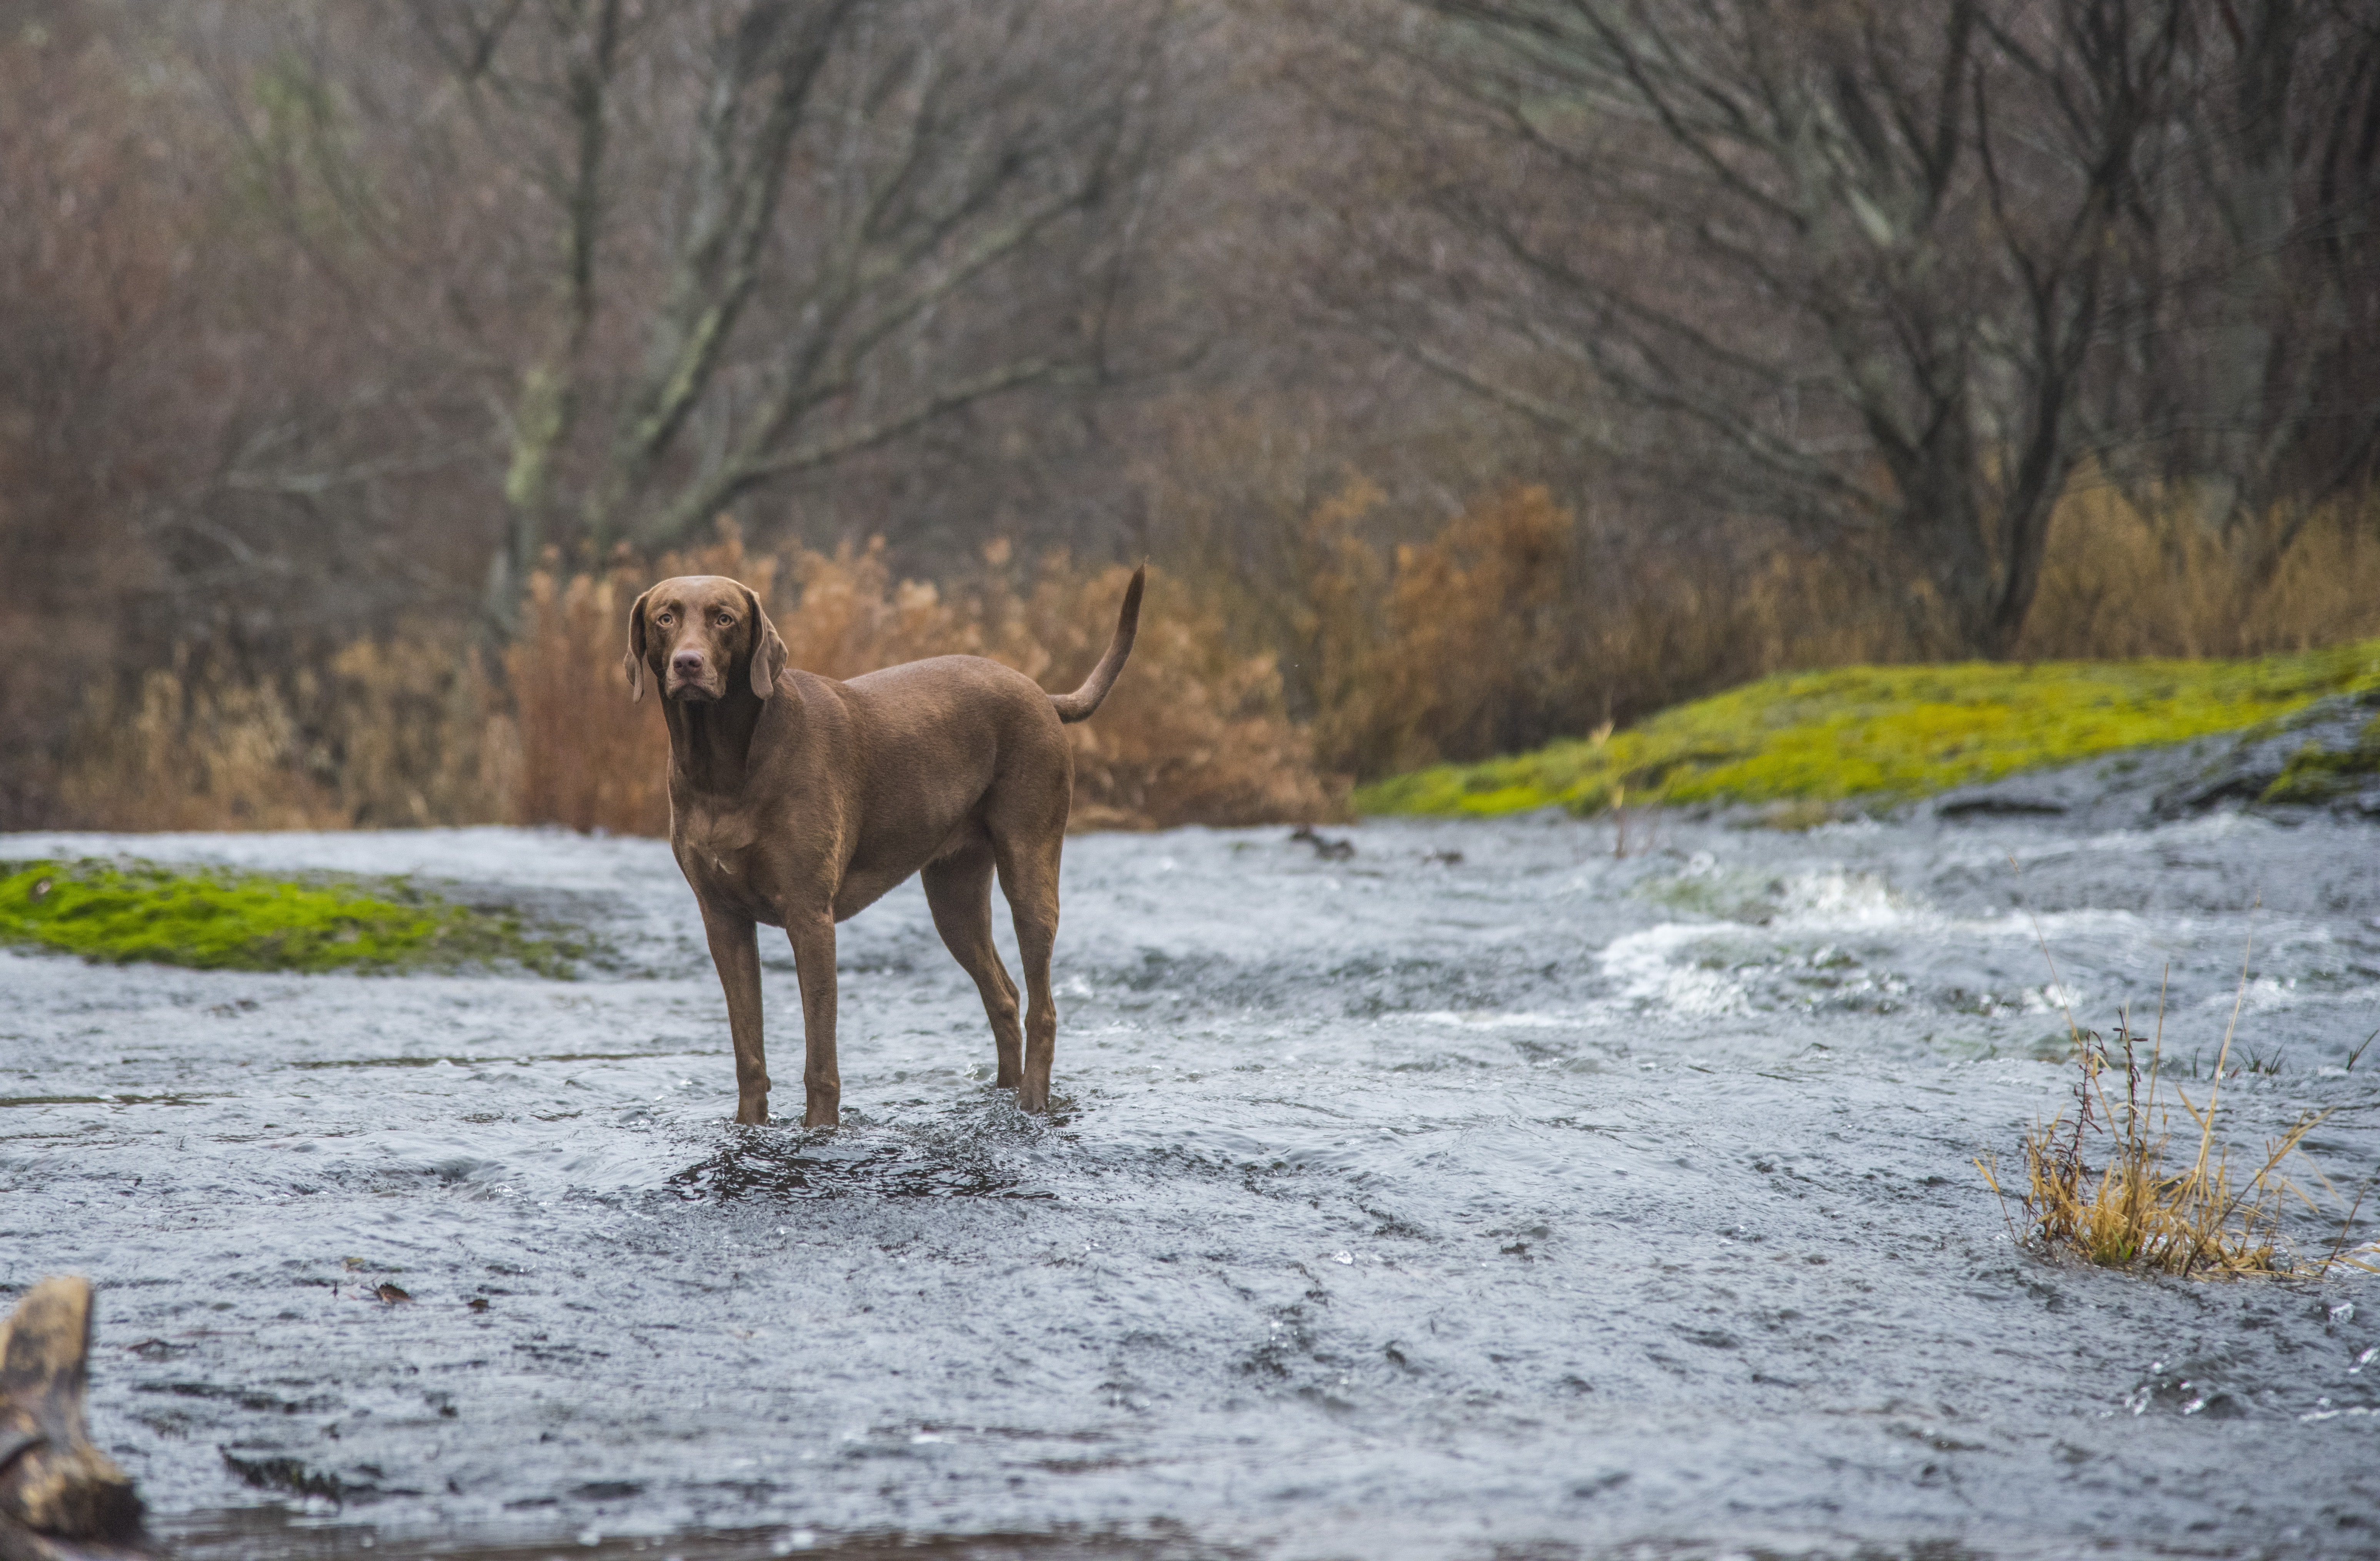 short-coated brown dog standing on body of water near trees